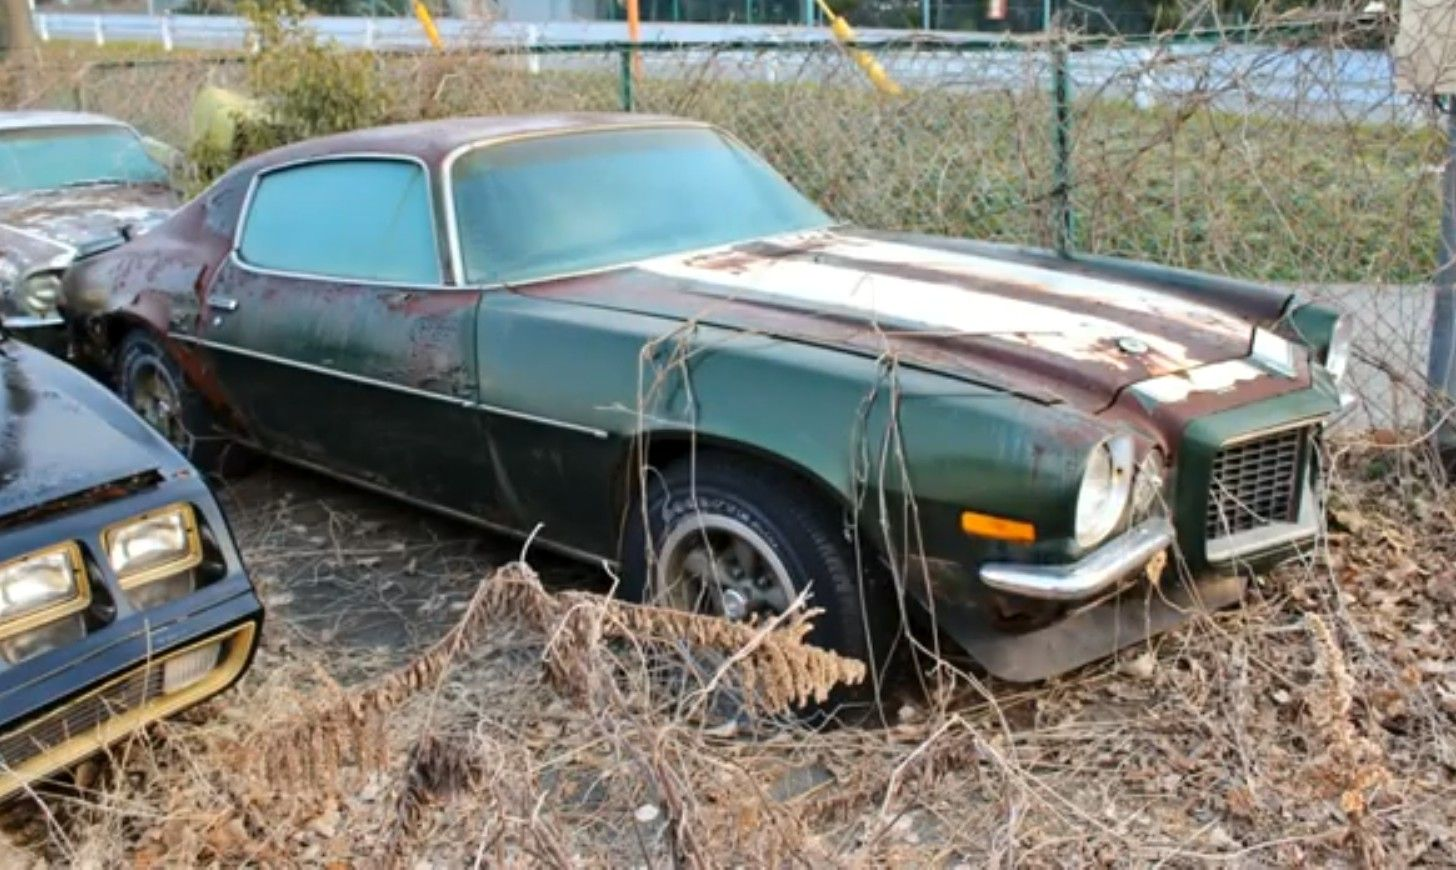 68 camaro | BARN FINDS | Pinterest | Barn finds, Cars and Abandoned ...